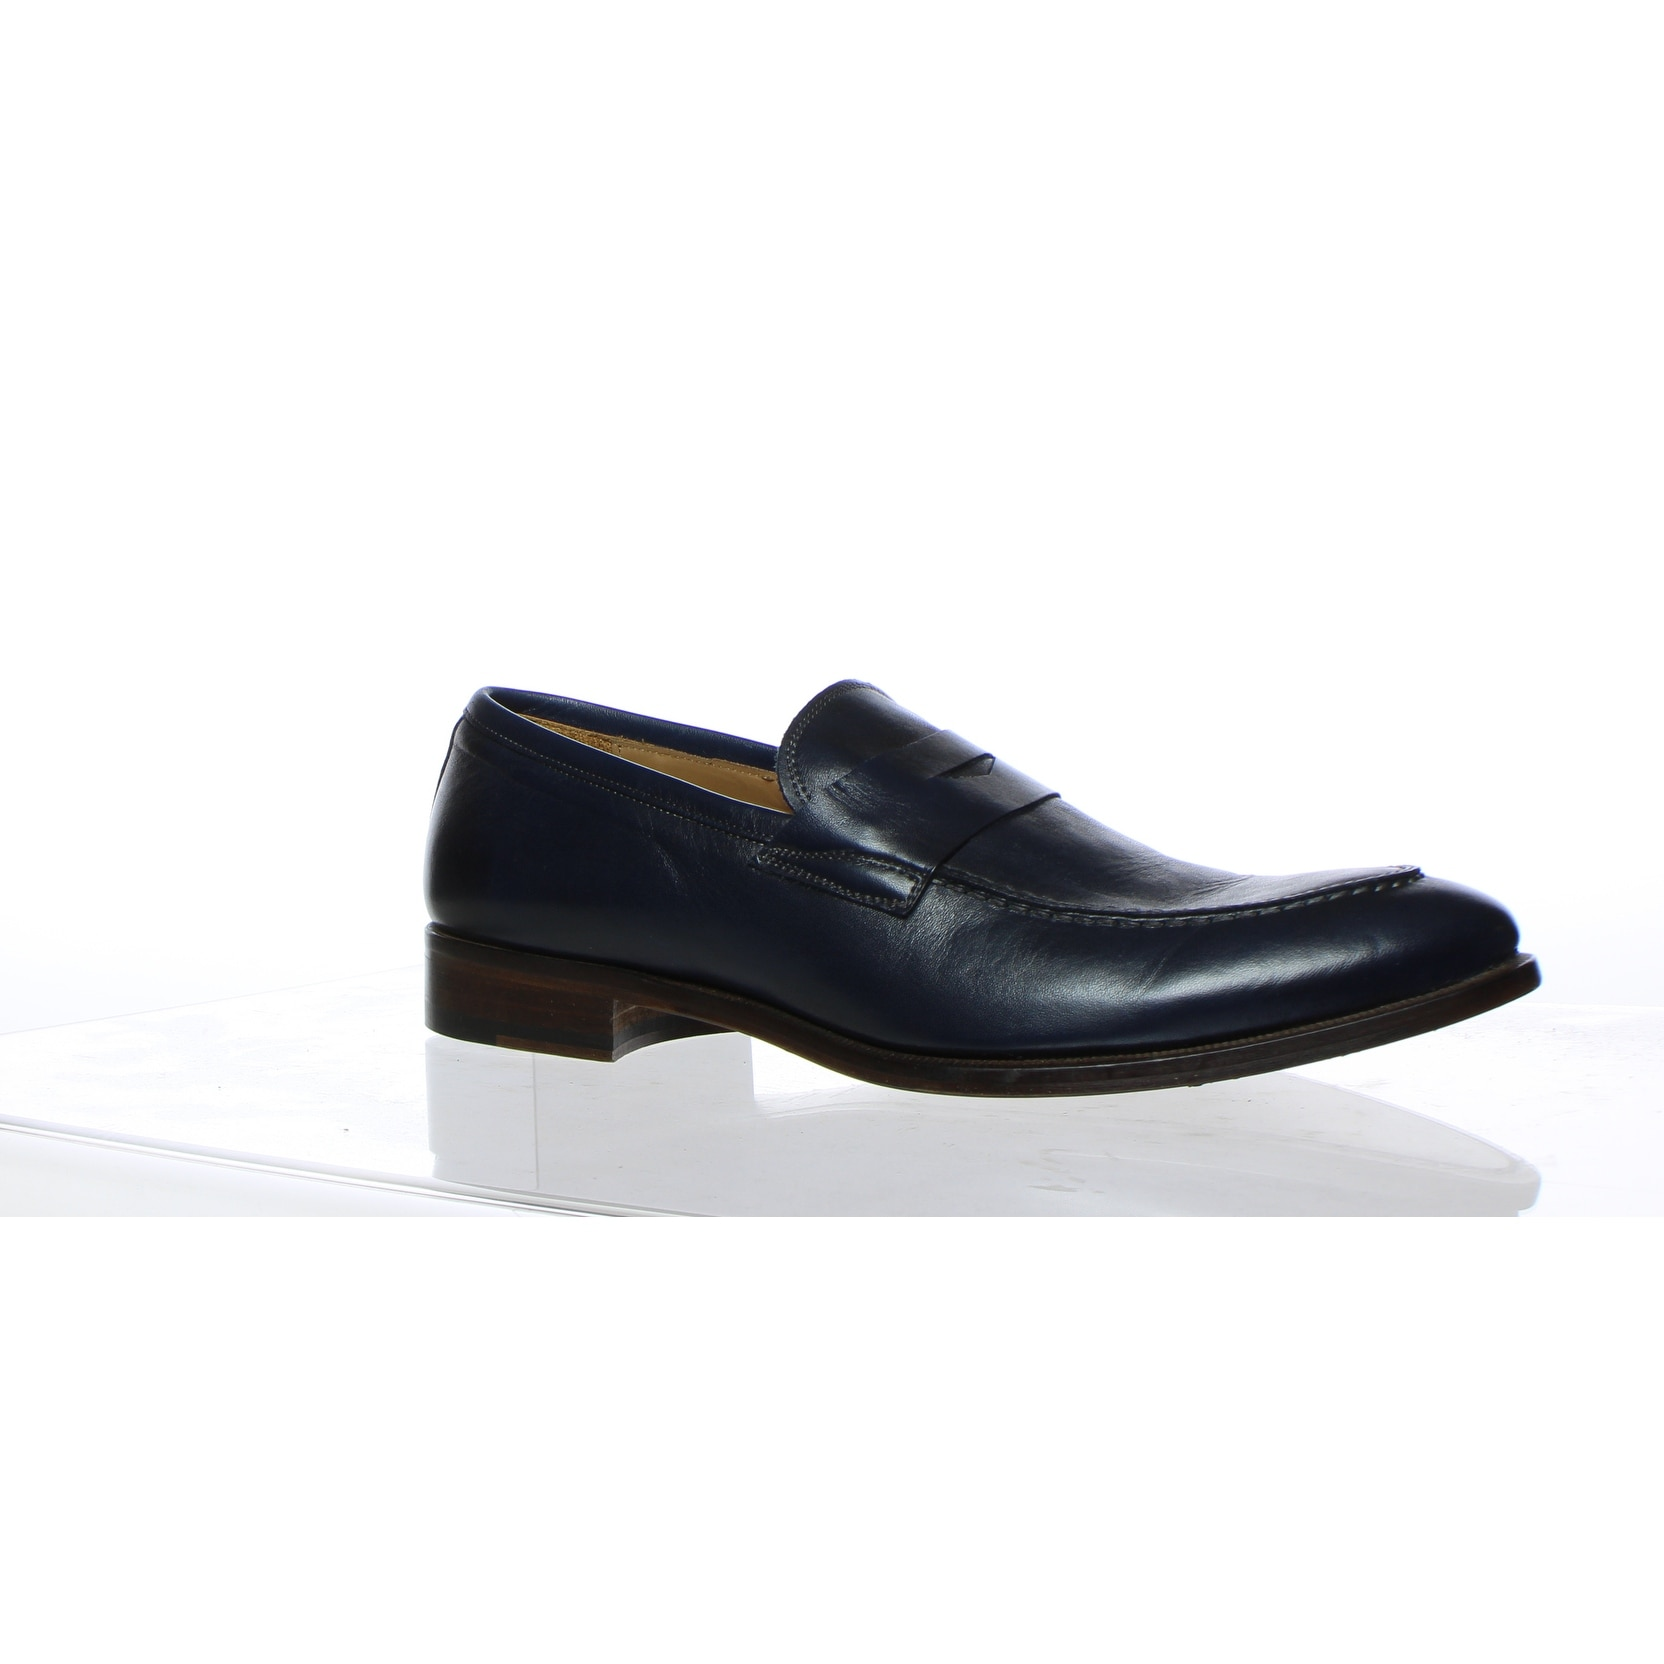 cabc5255d38 Shop Gordon Rush Mens Brock Navy Leather Loafers Size 10 - Free ...